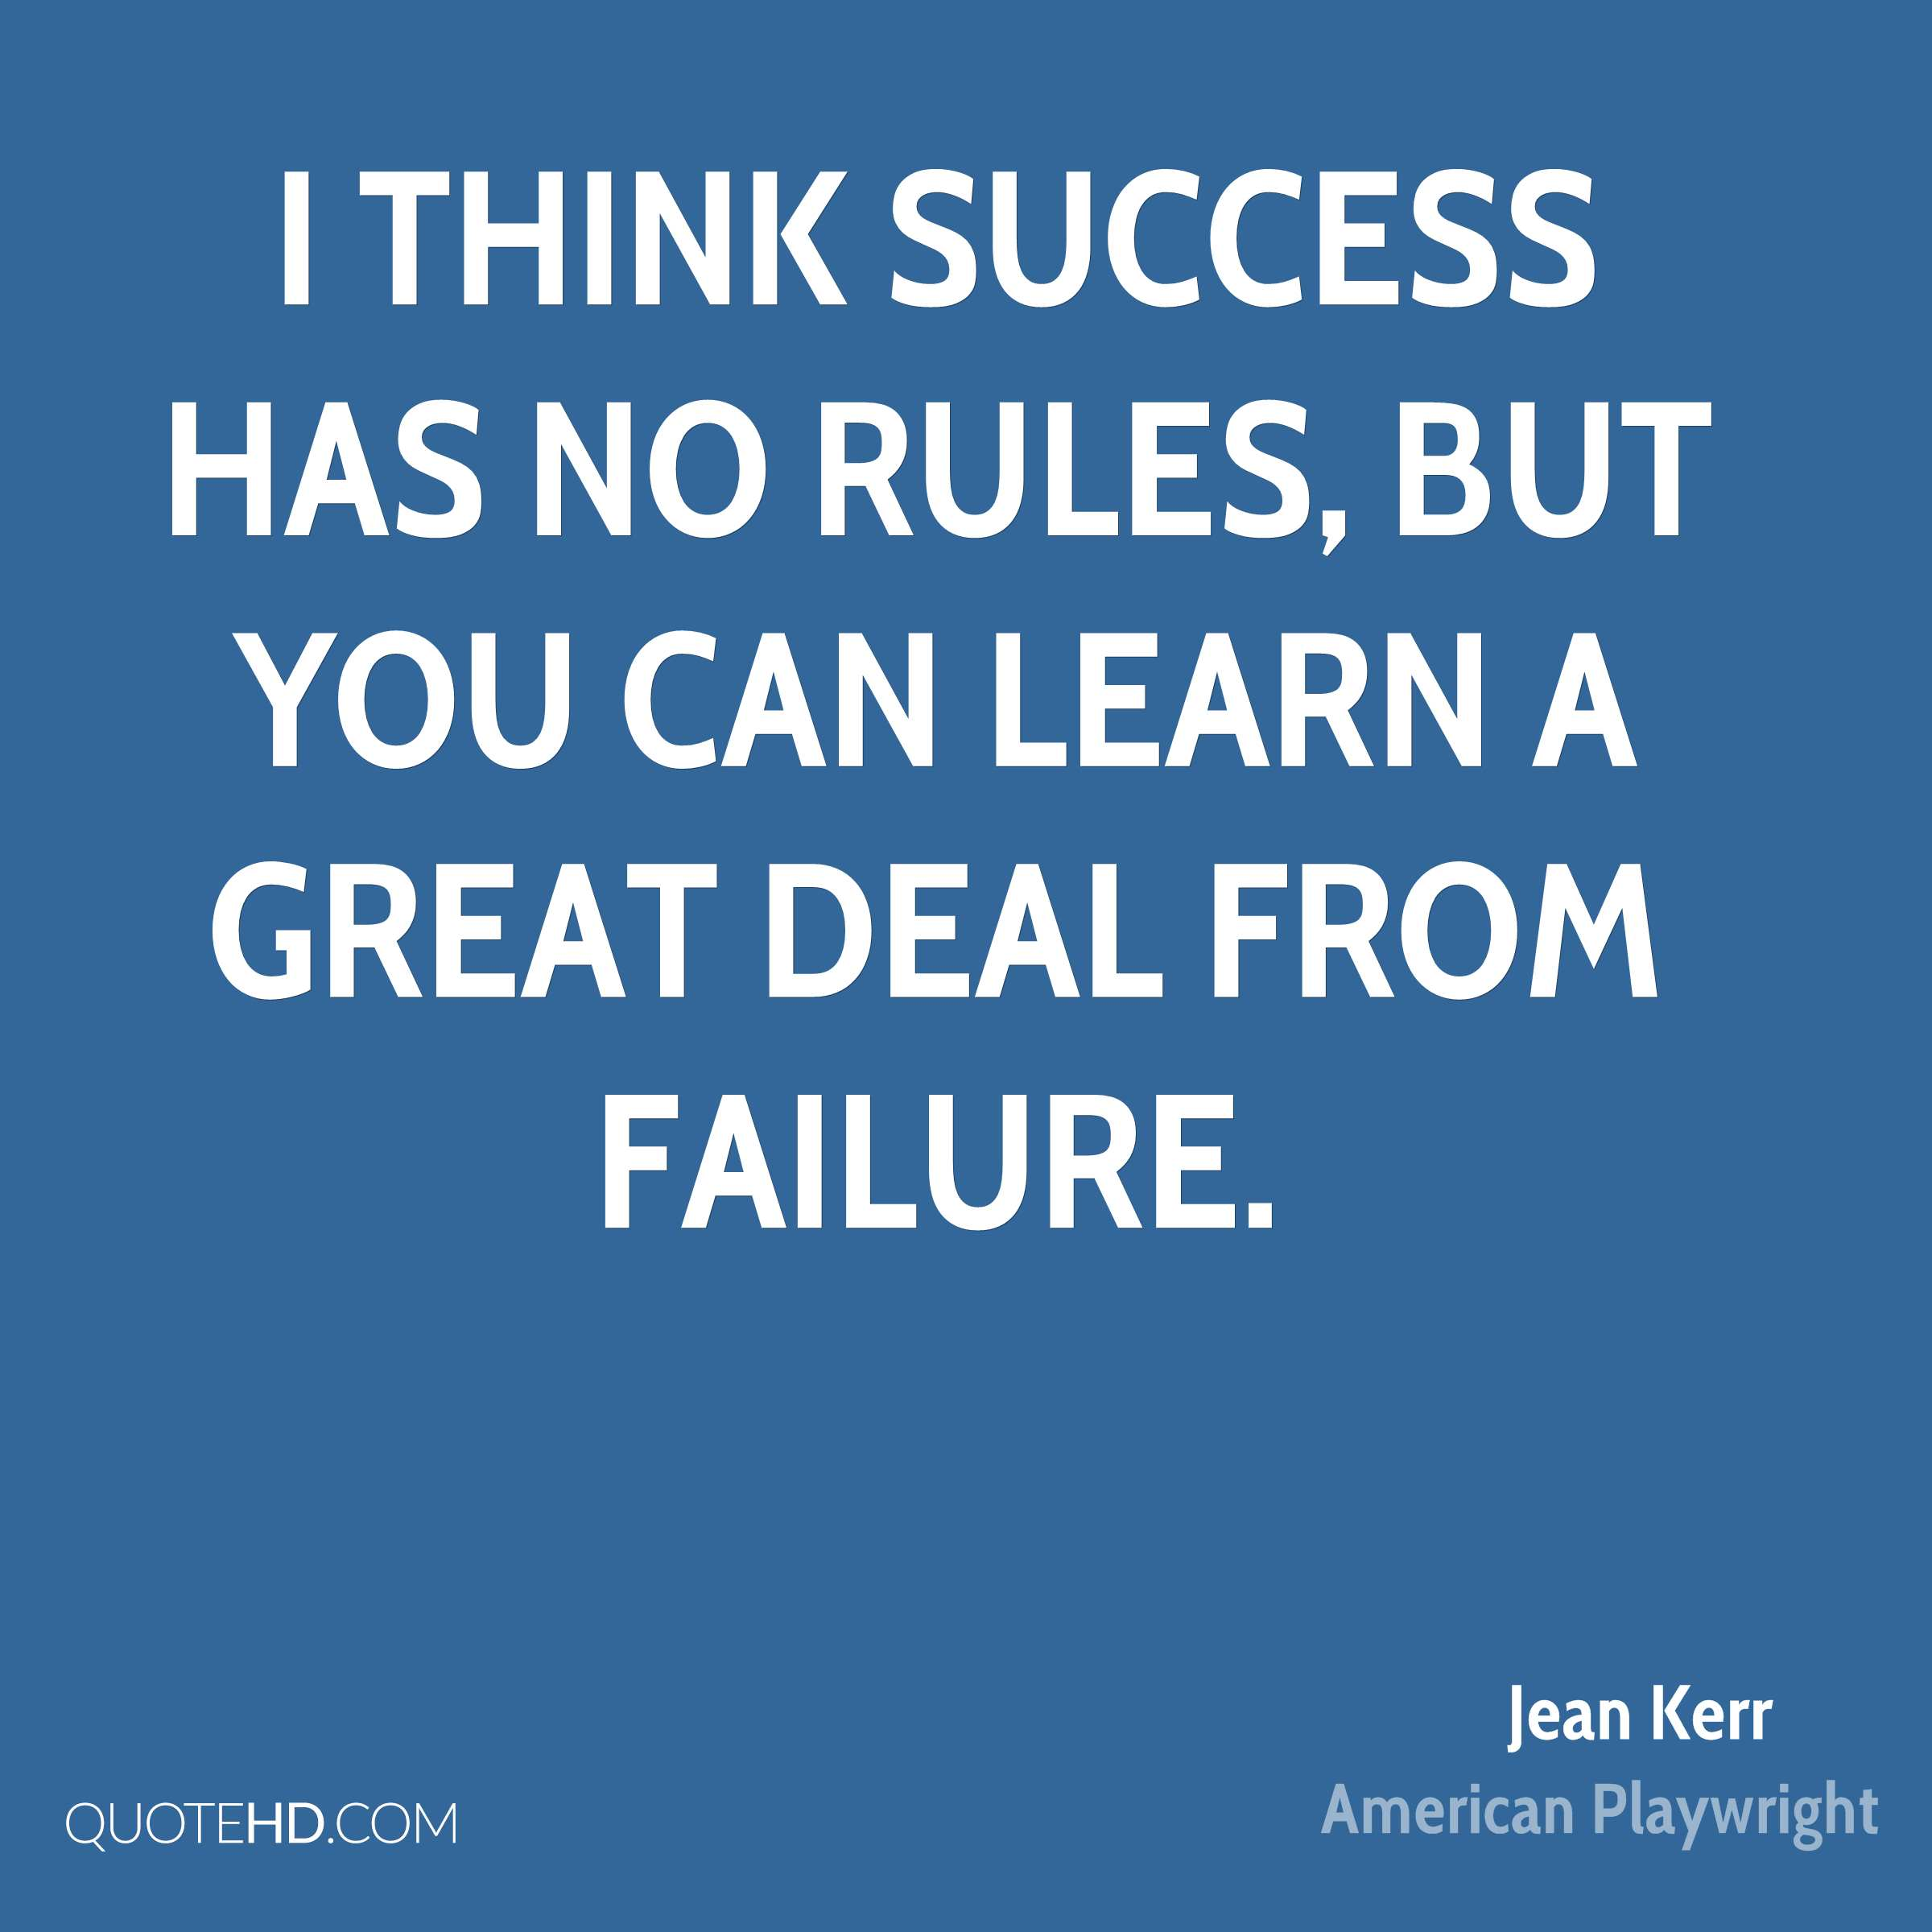 I think success has no rules, but you can learn a great deal from failure.